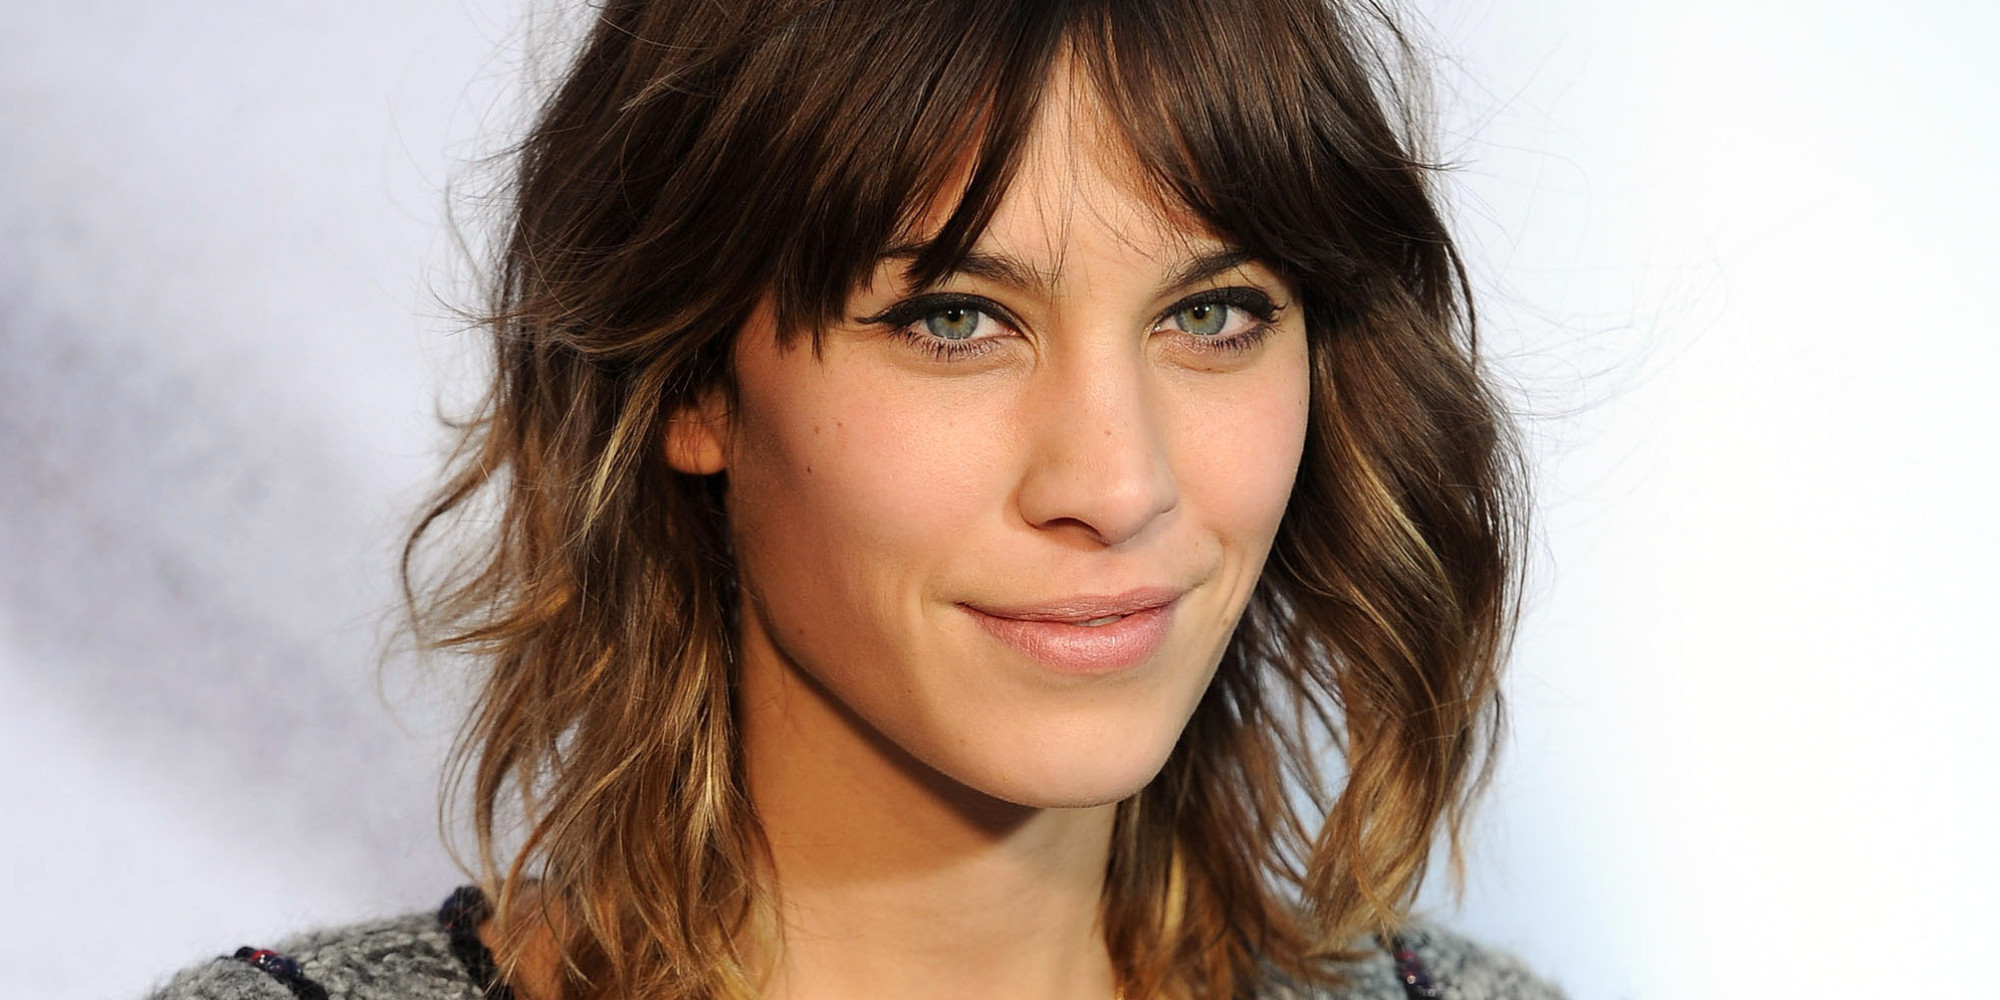 PARIS, FRANCE - MARCH 09:  Alexa Chung attends the Chanel Ready to Wear show as part of the Paris Womenswear Fashion Week Fall/Winter 2011 at Grand Palais on March 9, 2010 in Paris, France.  (Photo by Dominique Charriau/WireImage)